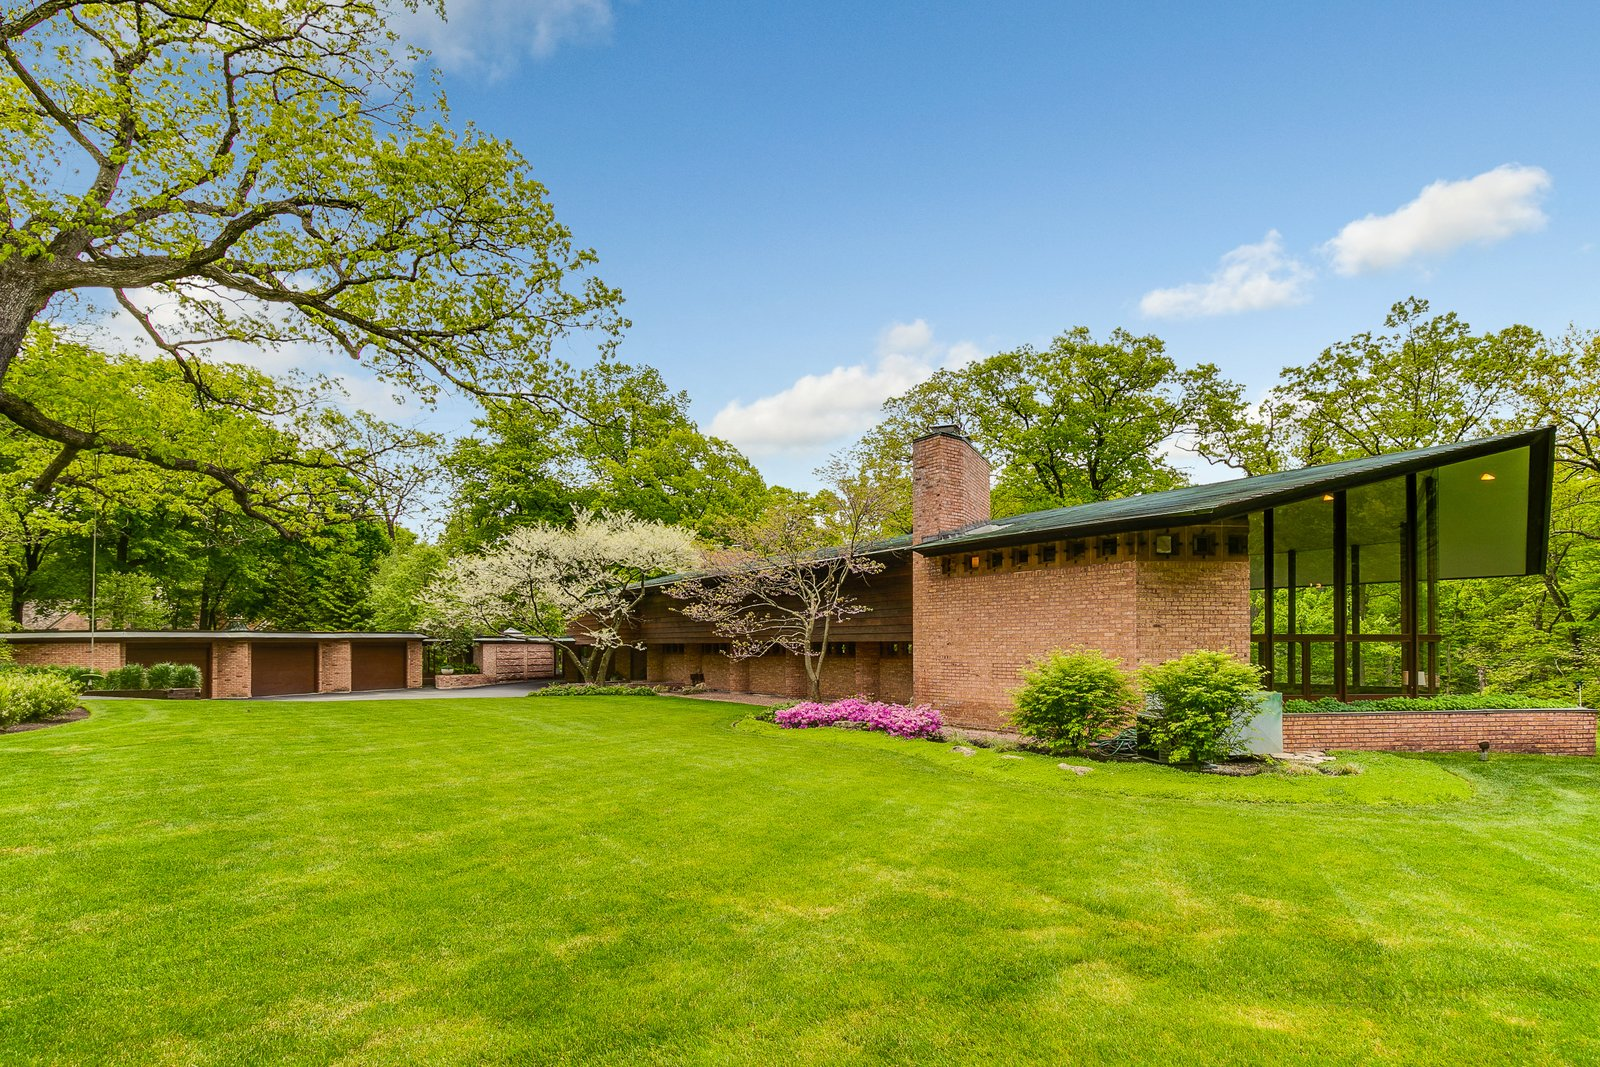 Exterior  Photo 1 of 23 in This Recently Listed Frank Lloyd Wright Home Is a Refreshing Blend of Old and New